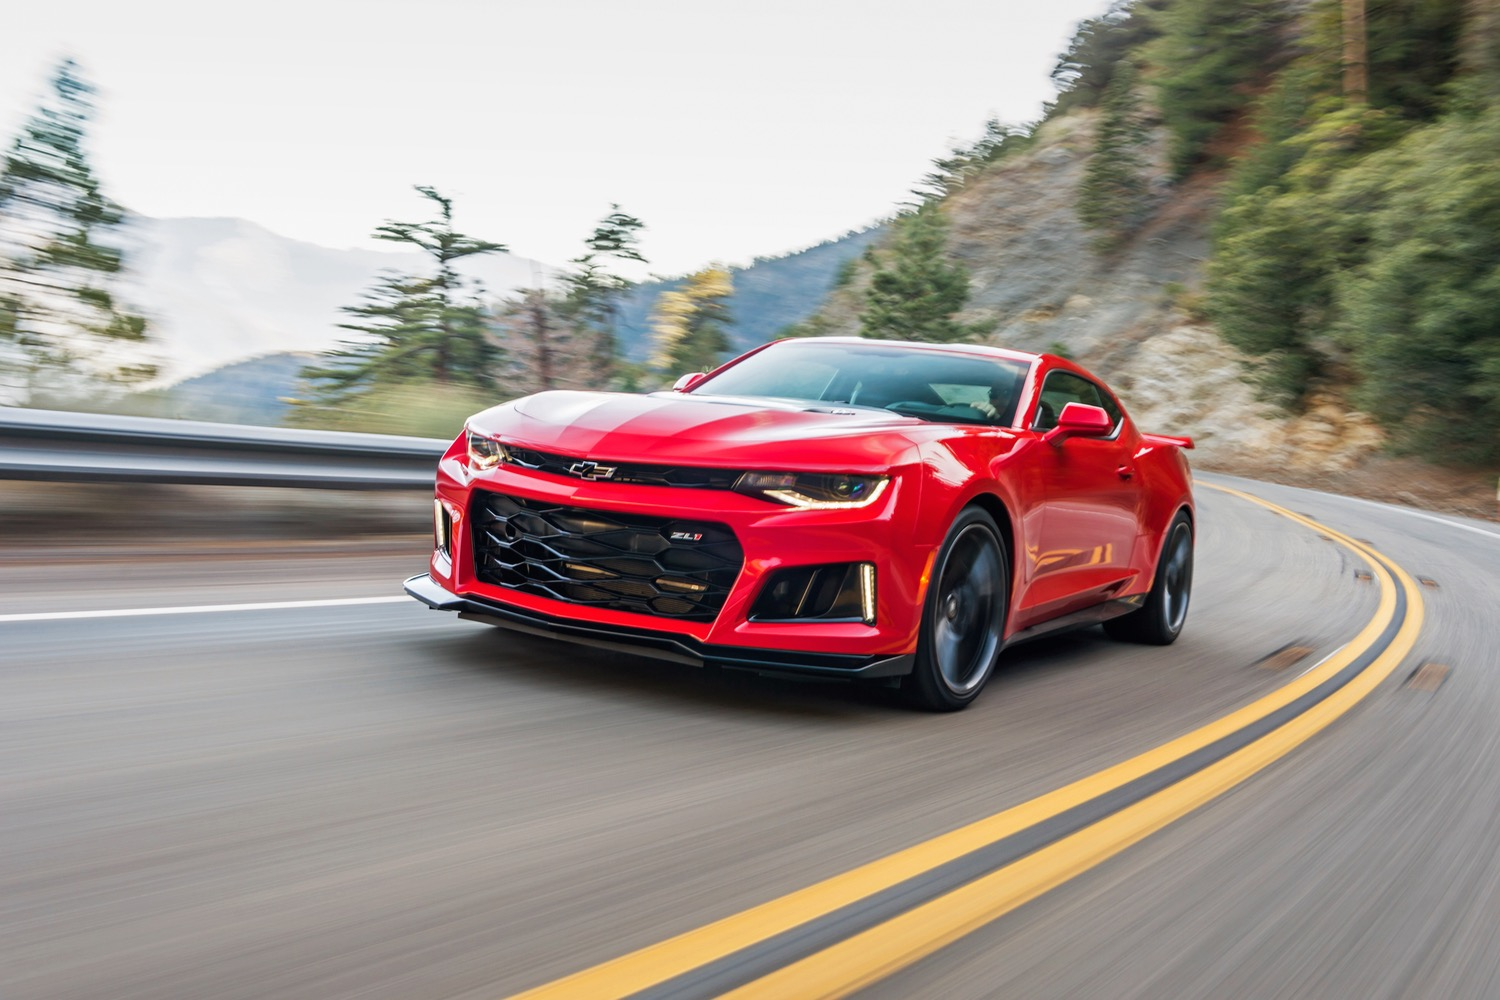 2017 chevrolet camaro zl1 aims for 200 mph and almost makes it. Black Bedroom Furniture Sets. Home Design Ideas